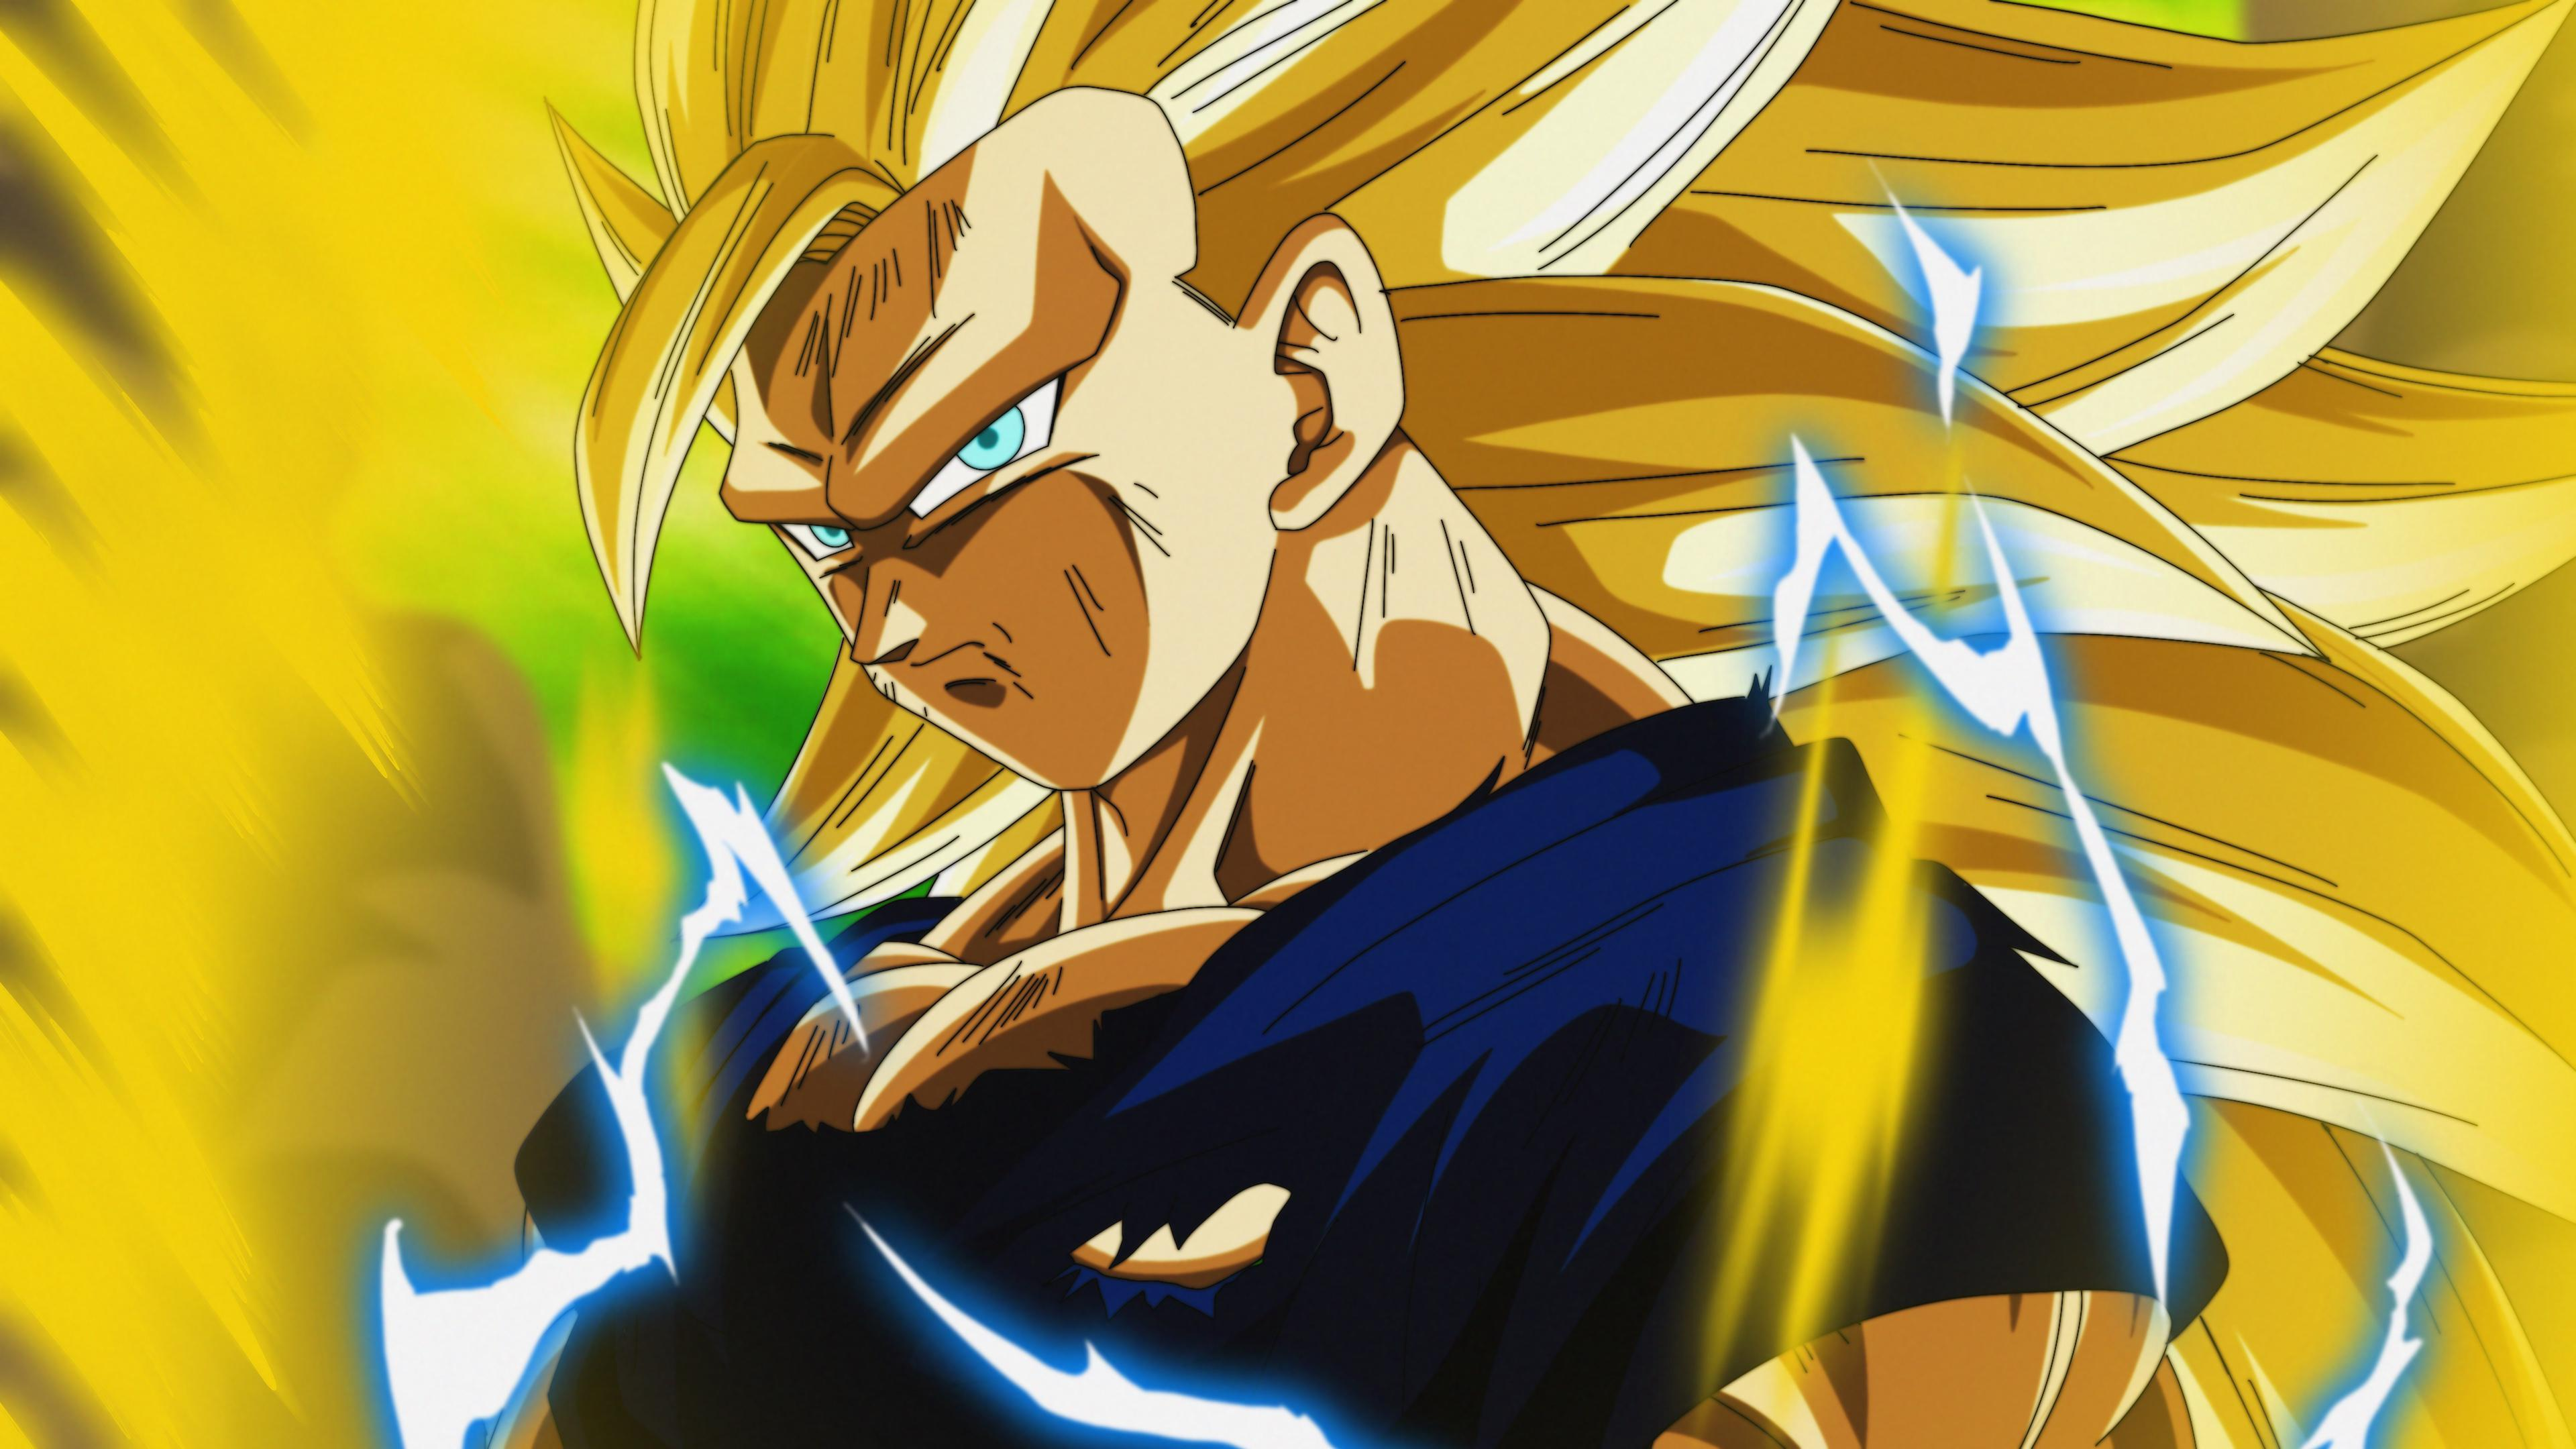 Saiyan 4k Wallpapers For Your Desktop Or Mobile Screen Free And